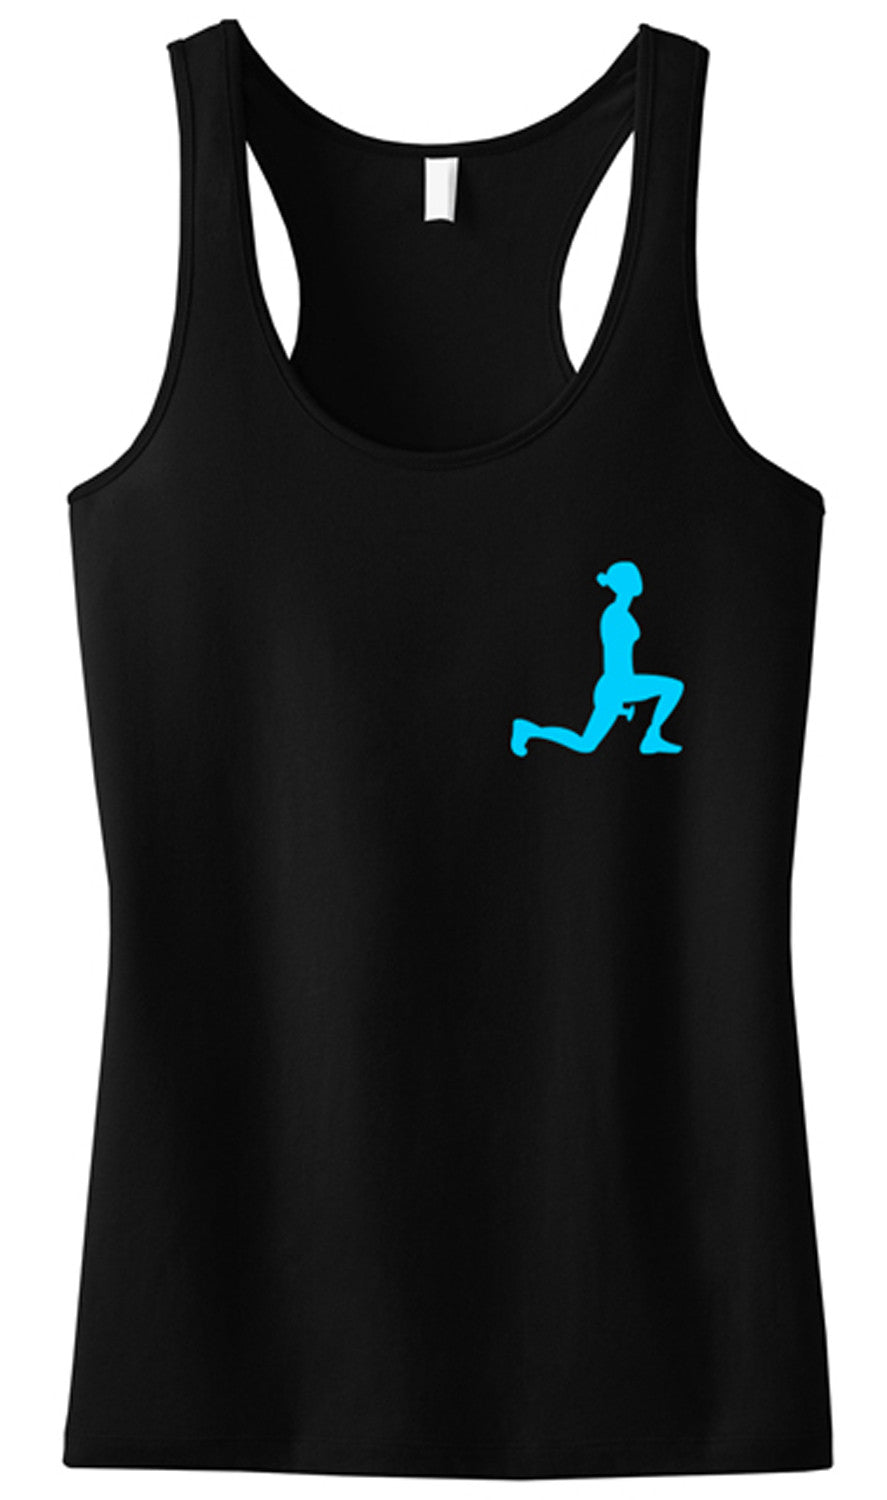 LEG DAY LUNGES Workout Tank Top Mini Logo, Black